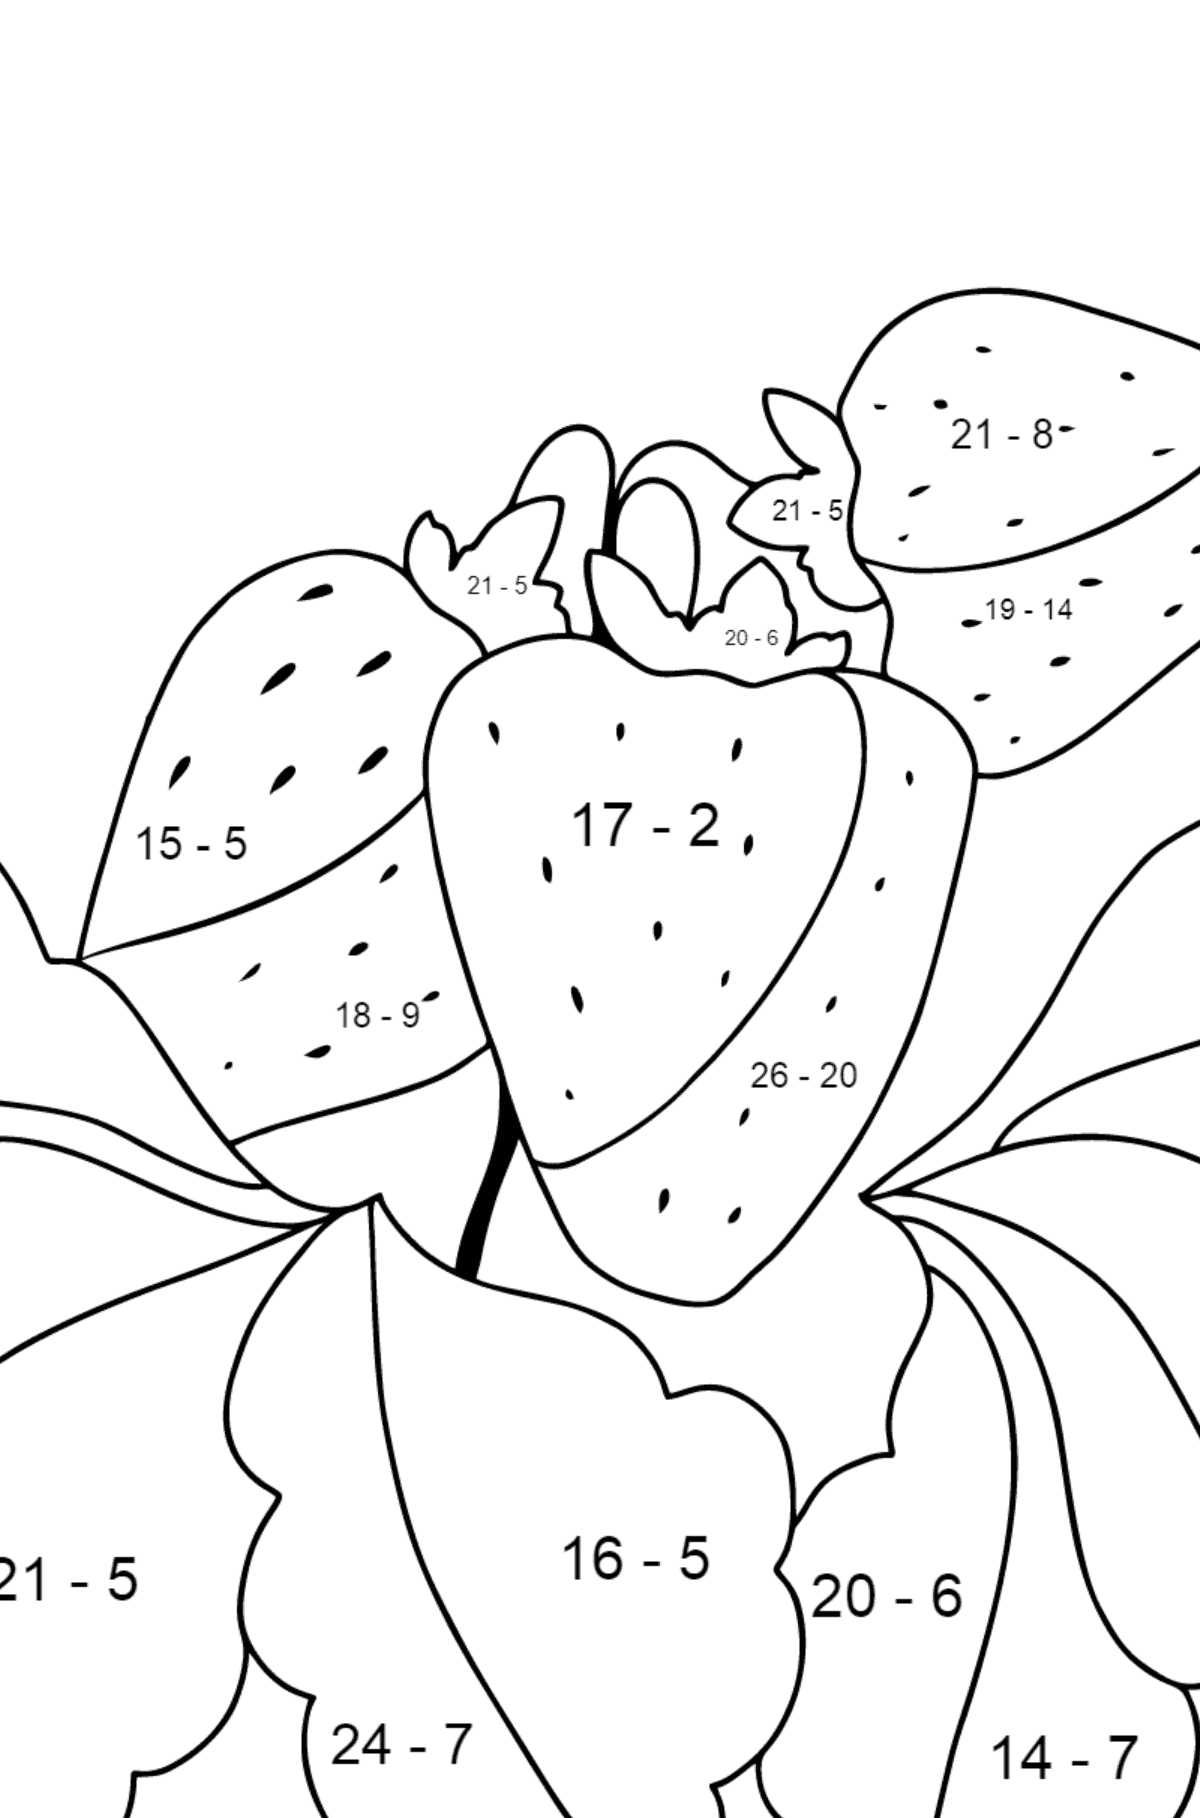 Summer Coloring Page - Strawberries are Ready on the Garden Bed - Math Coloring - Subtraction for Kids